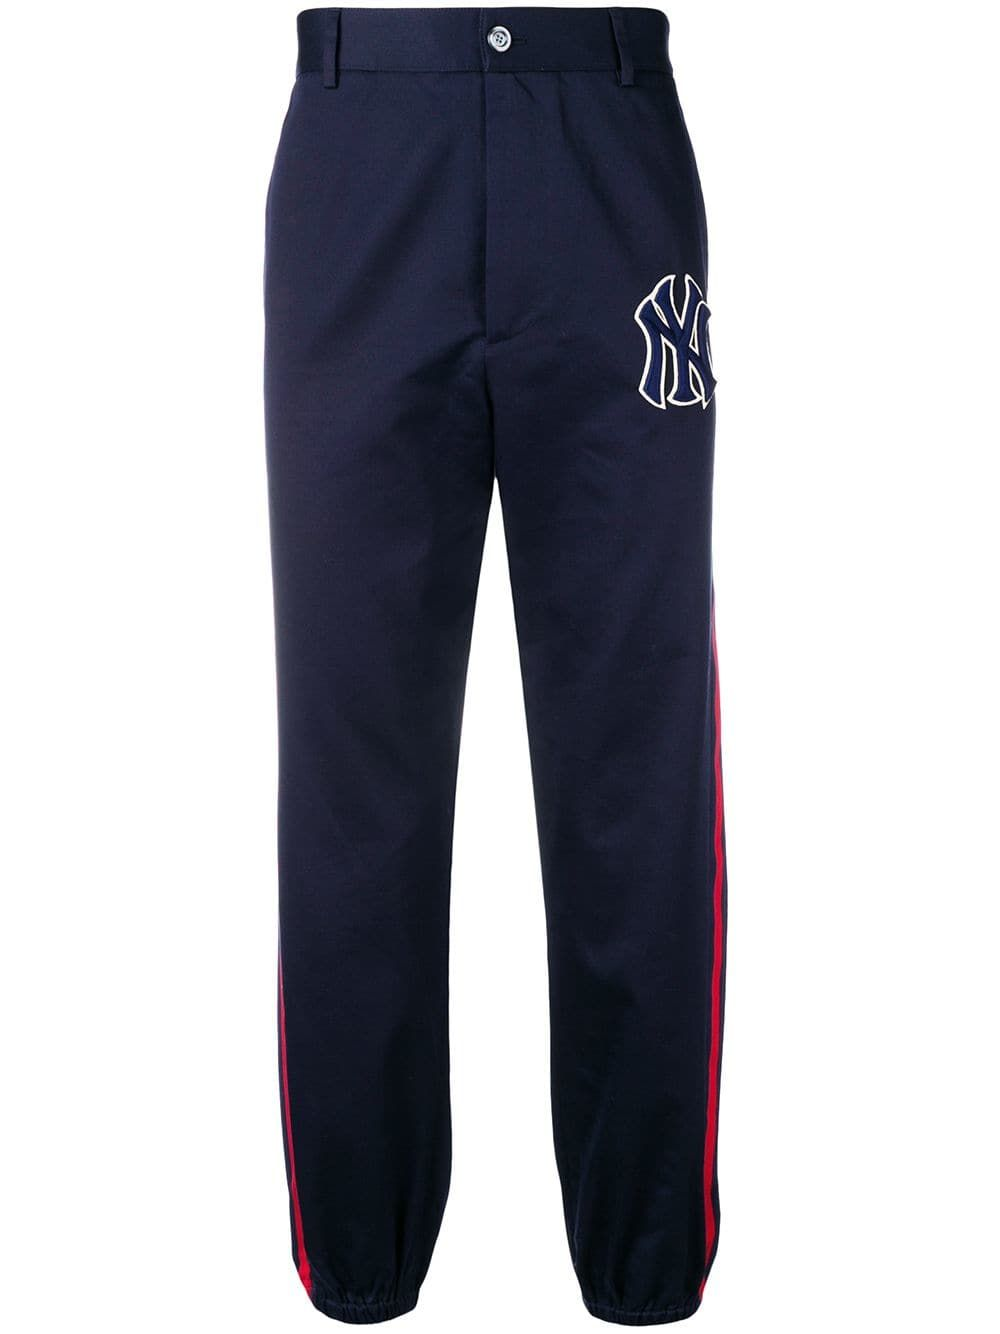 43104babc64d1 GUCCI GUCCI NY YANKEES TAILORED TRACK TROUSERS - BLUE.  gucci  cloth ...